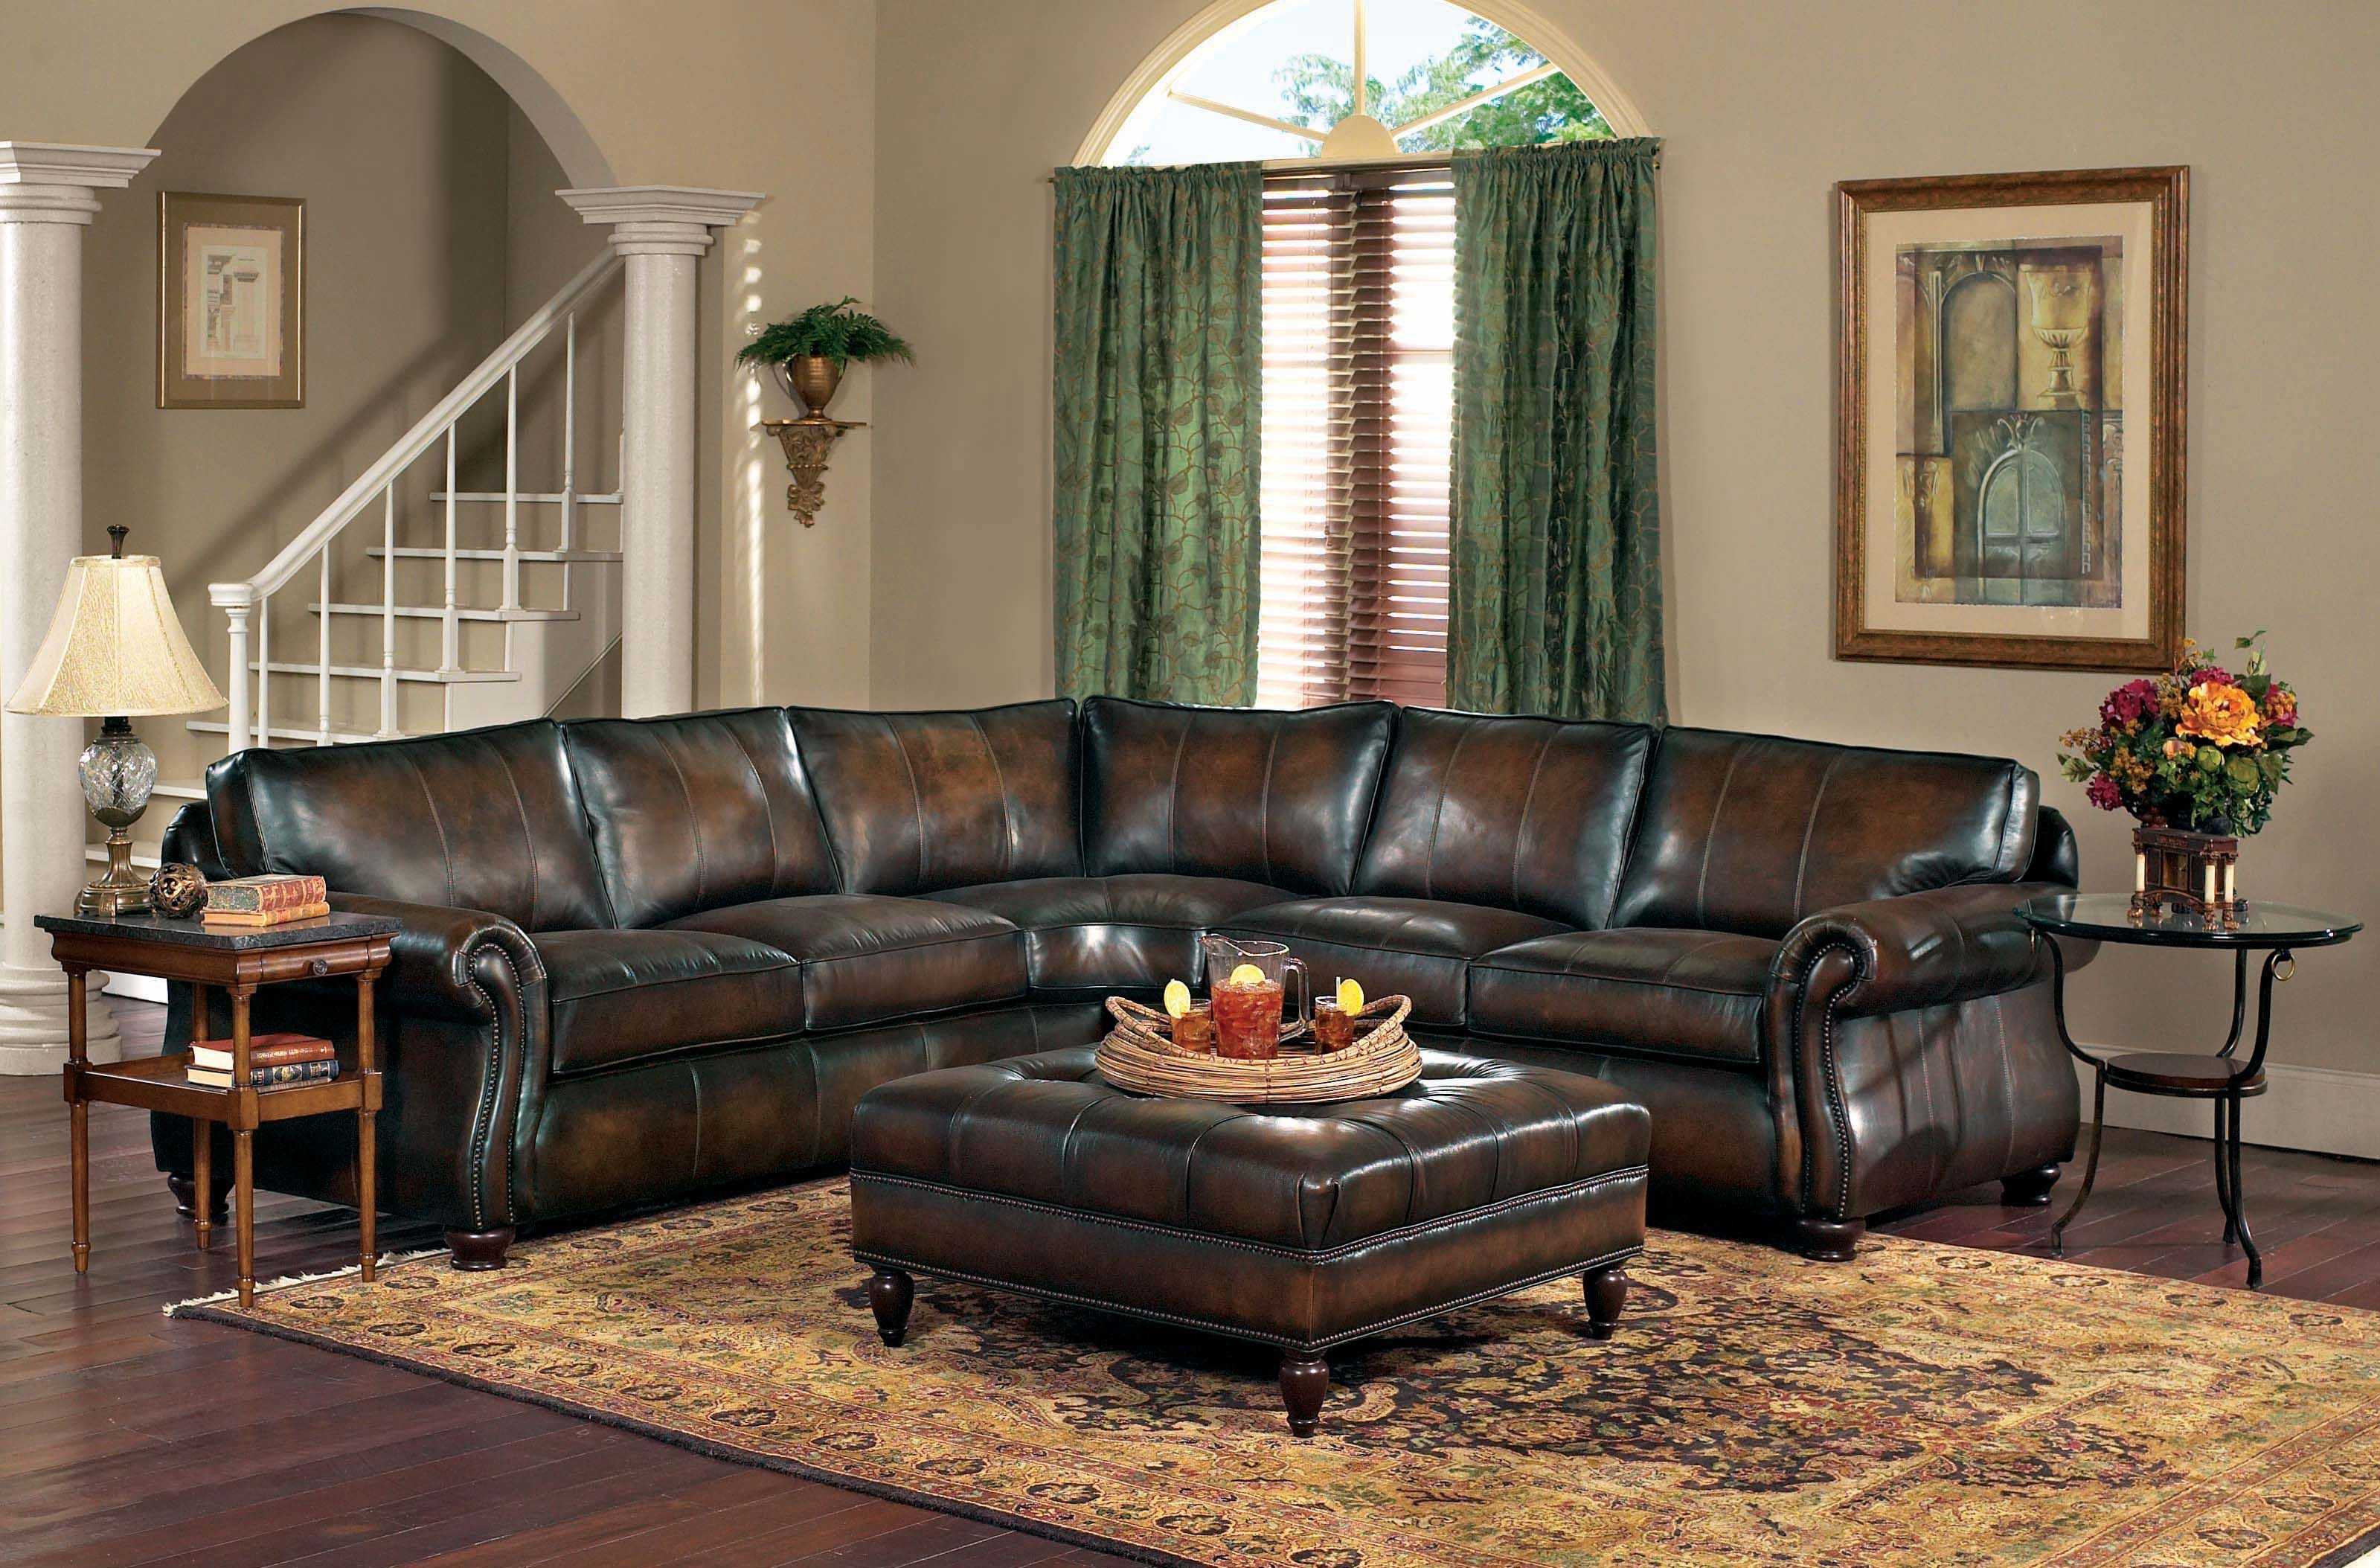 Van Gogh 100% Leather 2 Piece Sectional